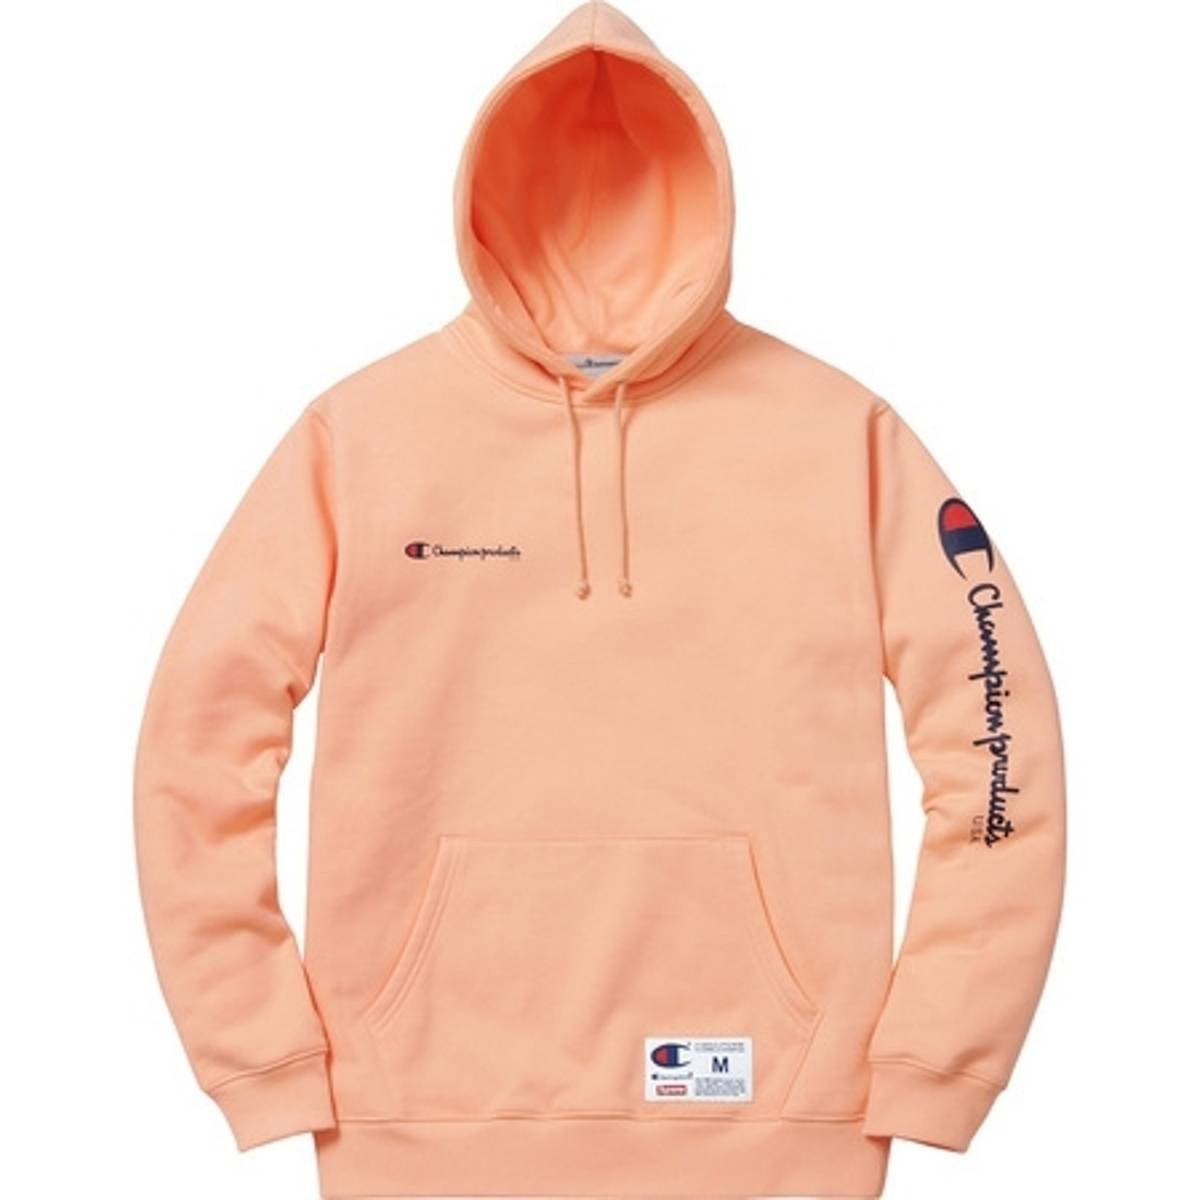 2a5ee172059 Supreme Supreme X Champion Hooded Sweatshirt In Peach